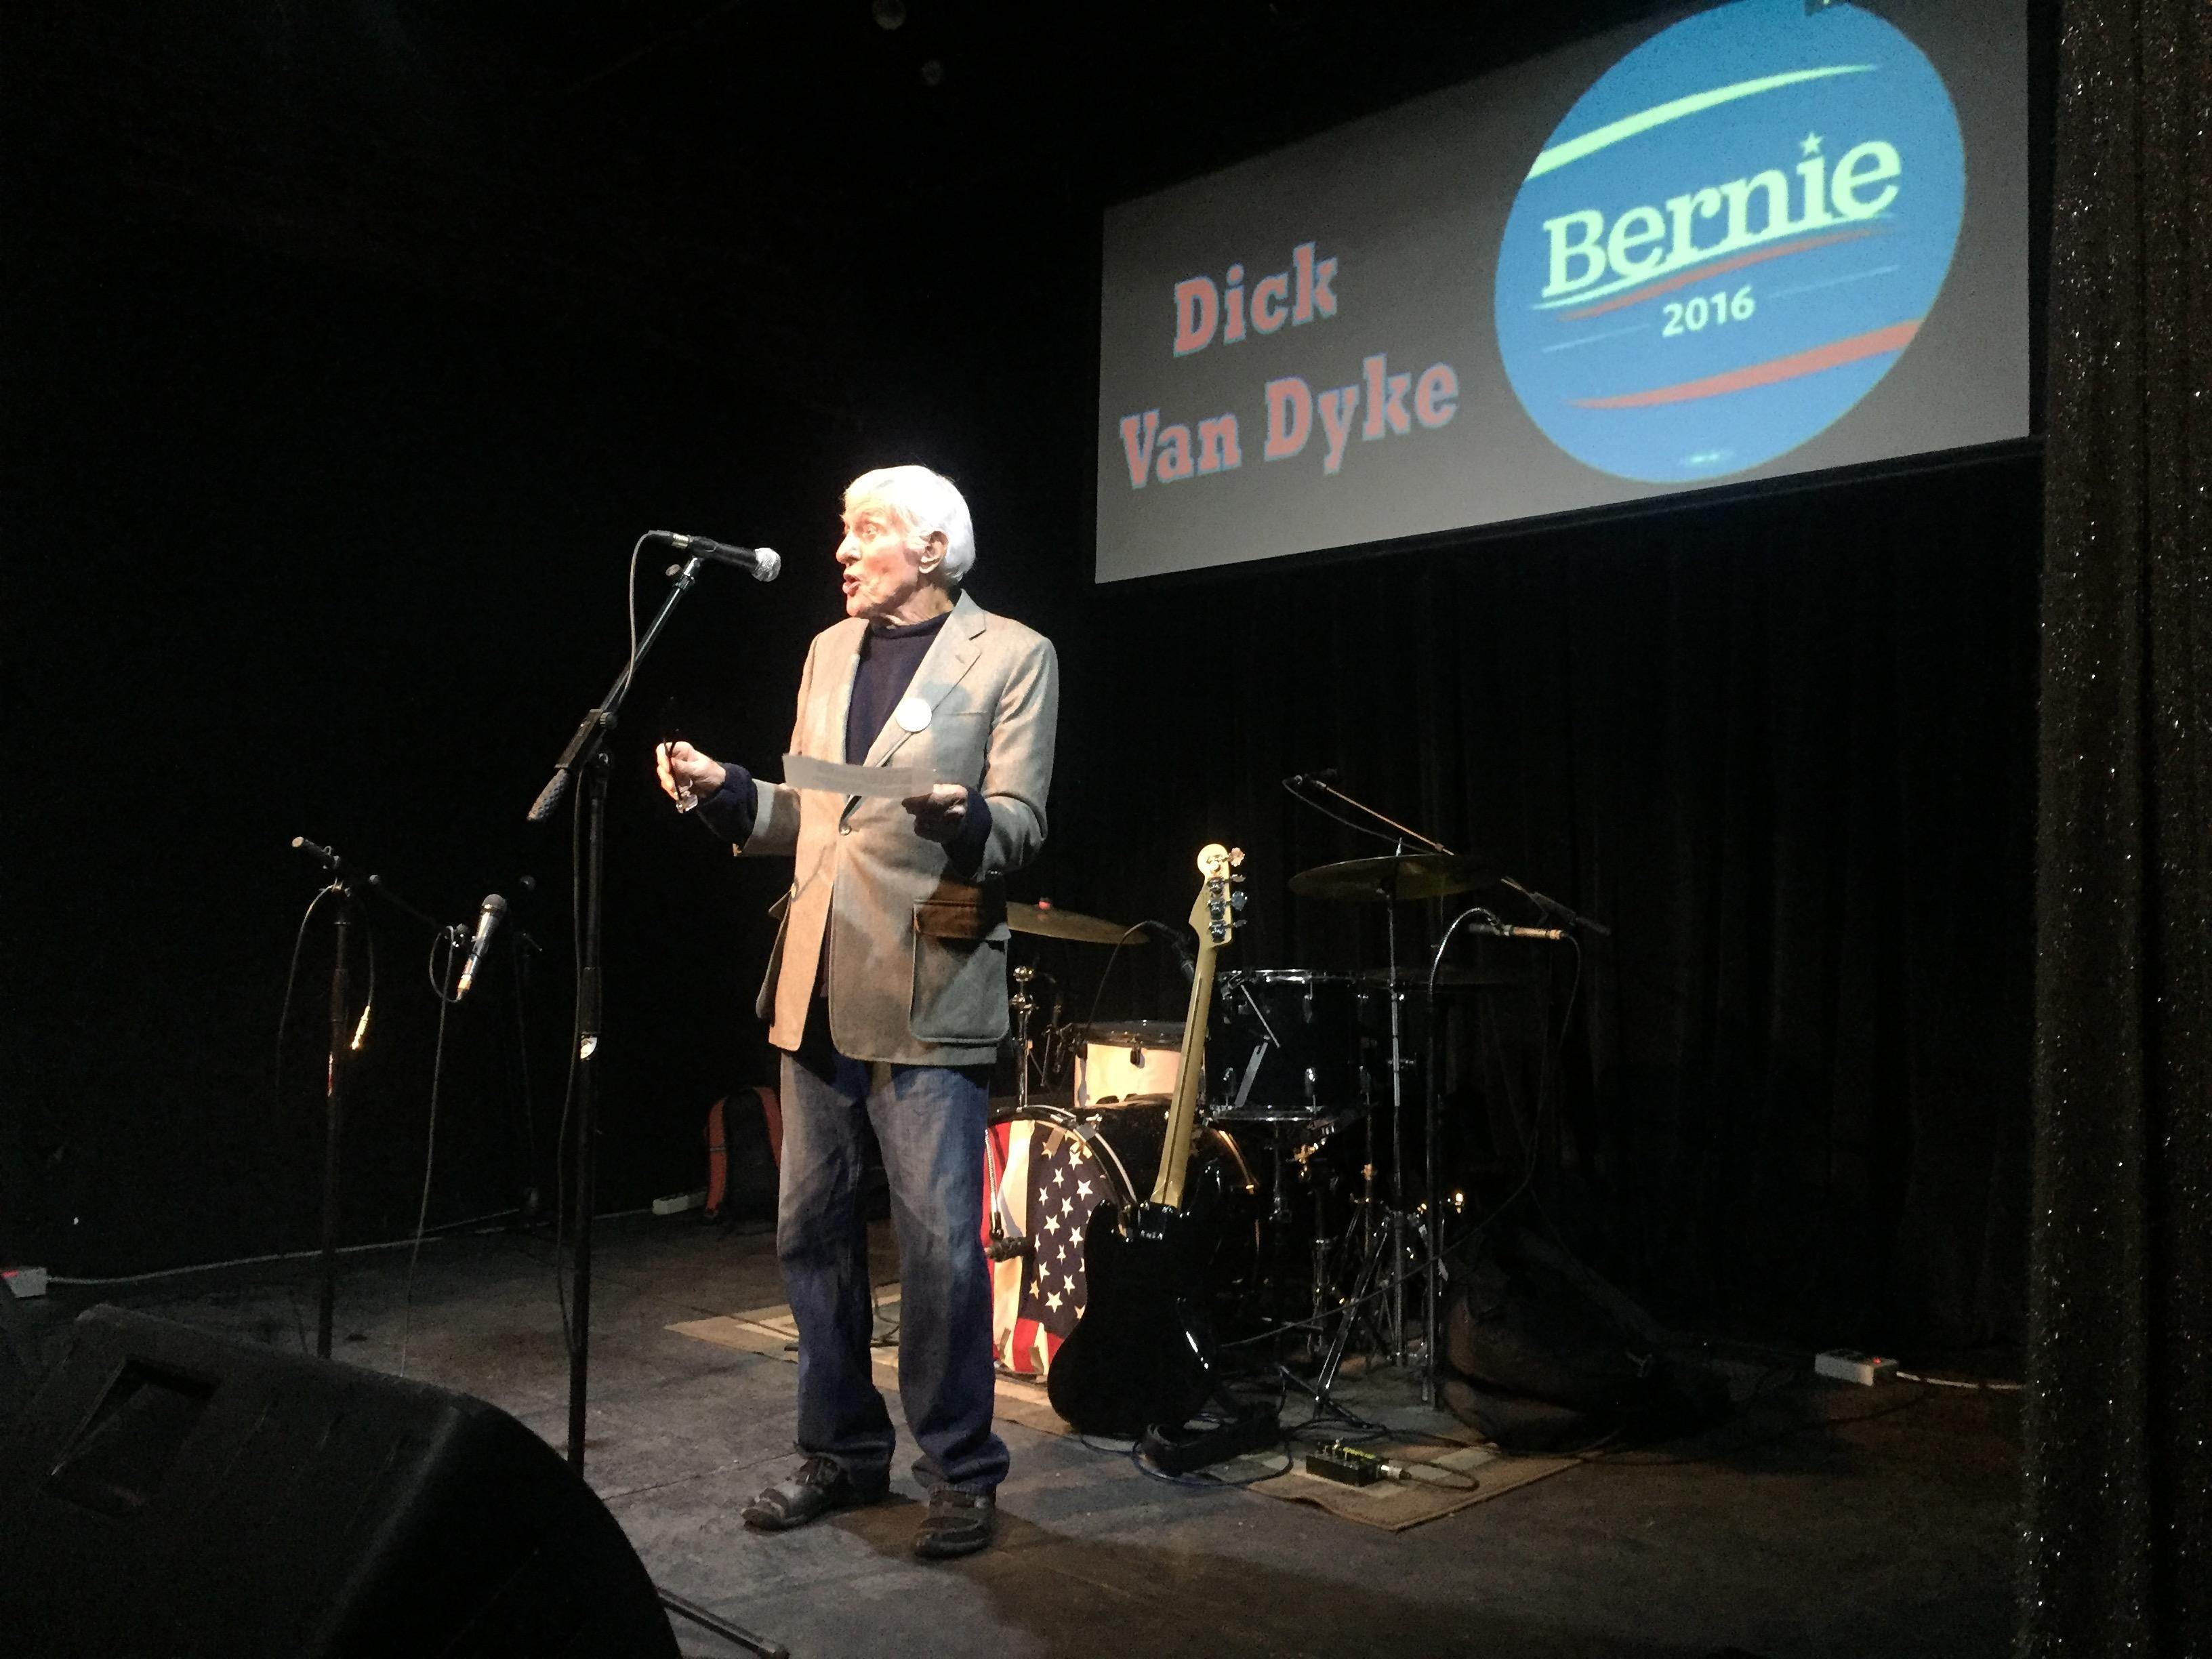 Hollywood icon, Dick Van Dyke, hosts Bands for Bernie in Reno, a grassroots campaign reaching voters through music.